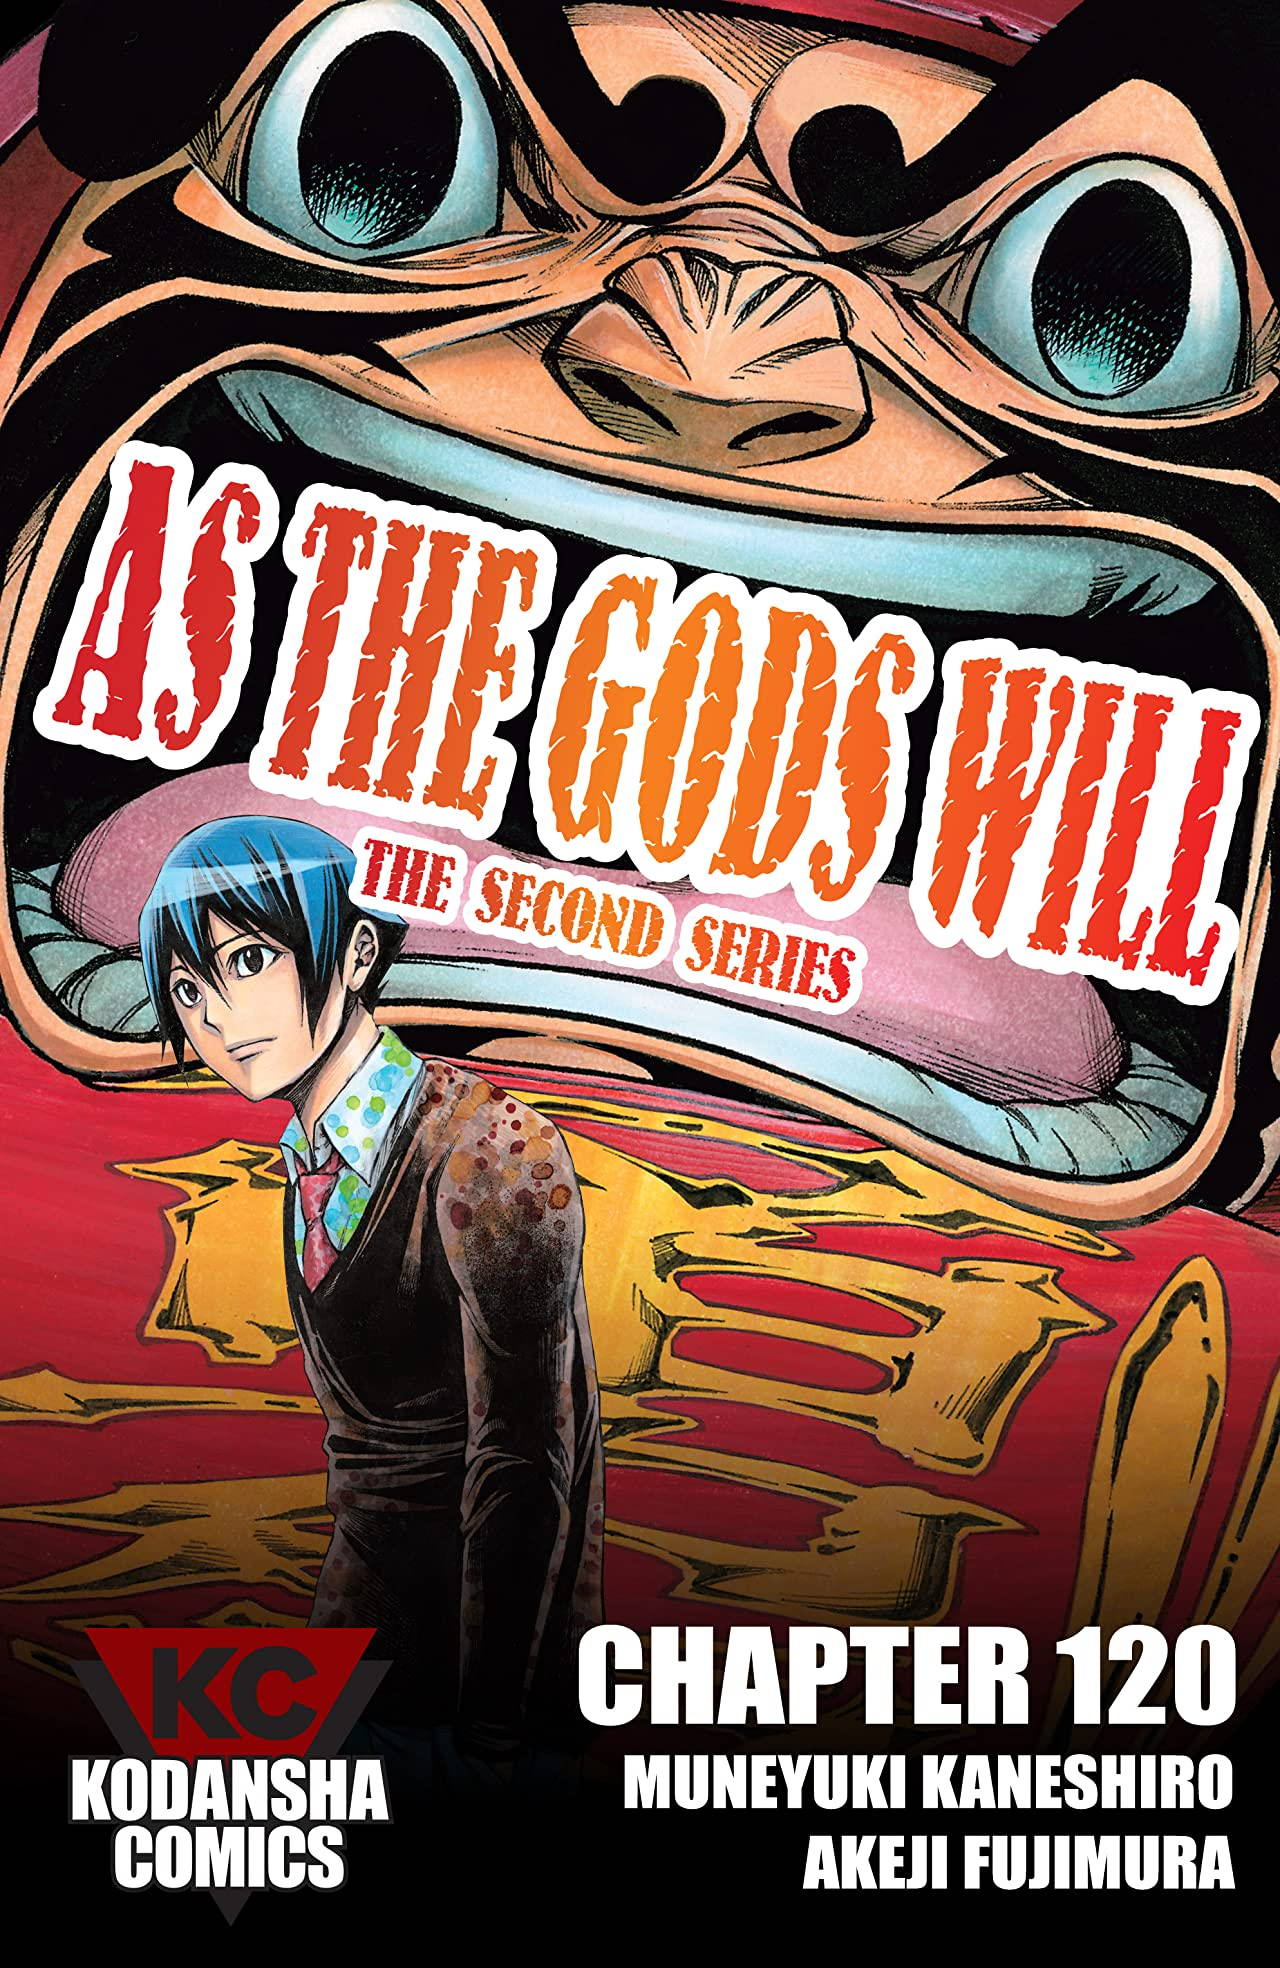 As The Gods Will: The Second Series #120